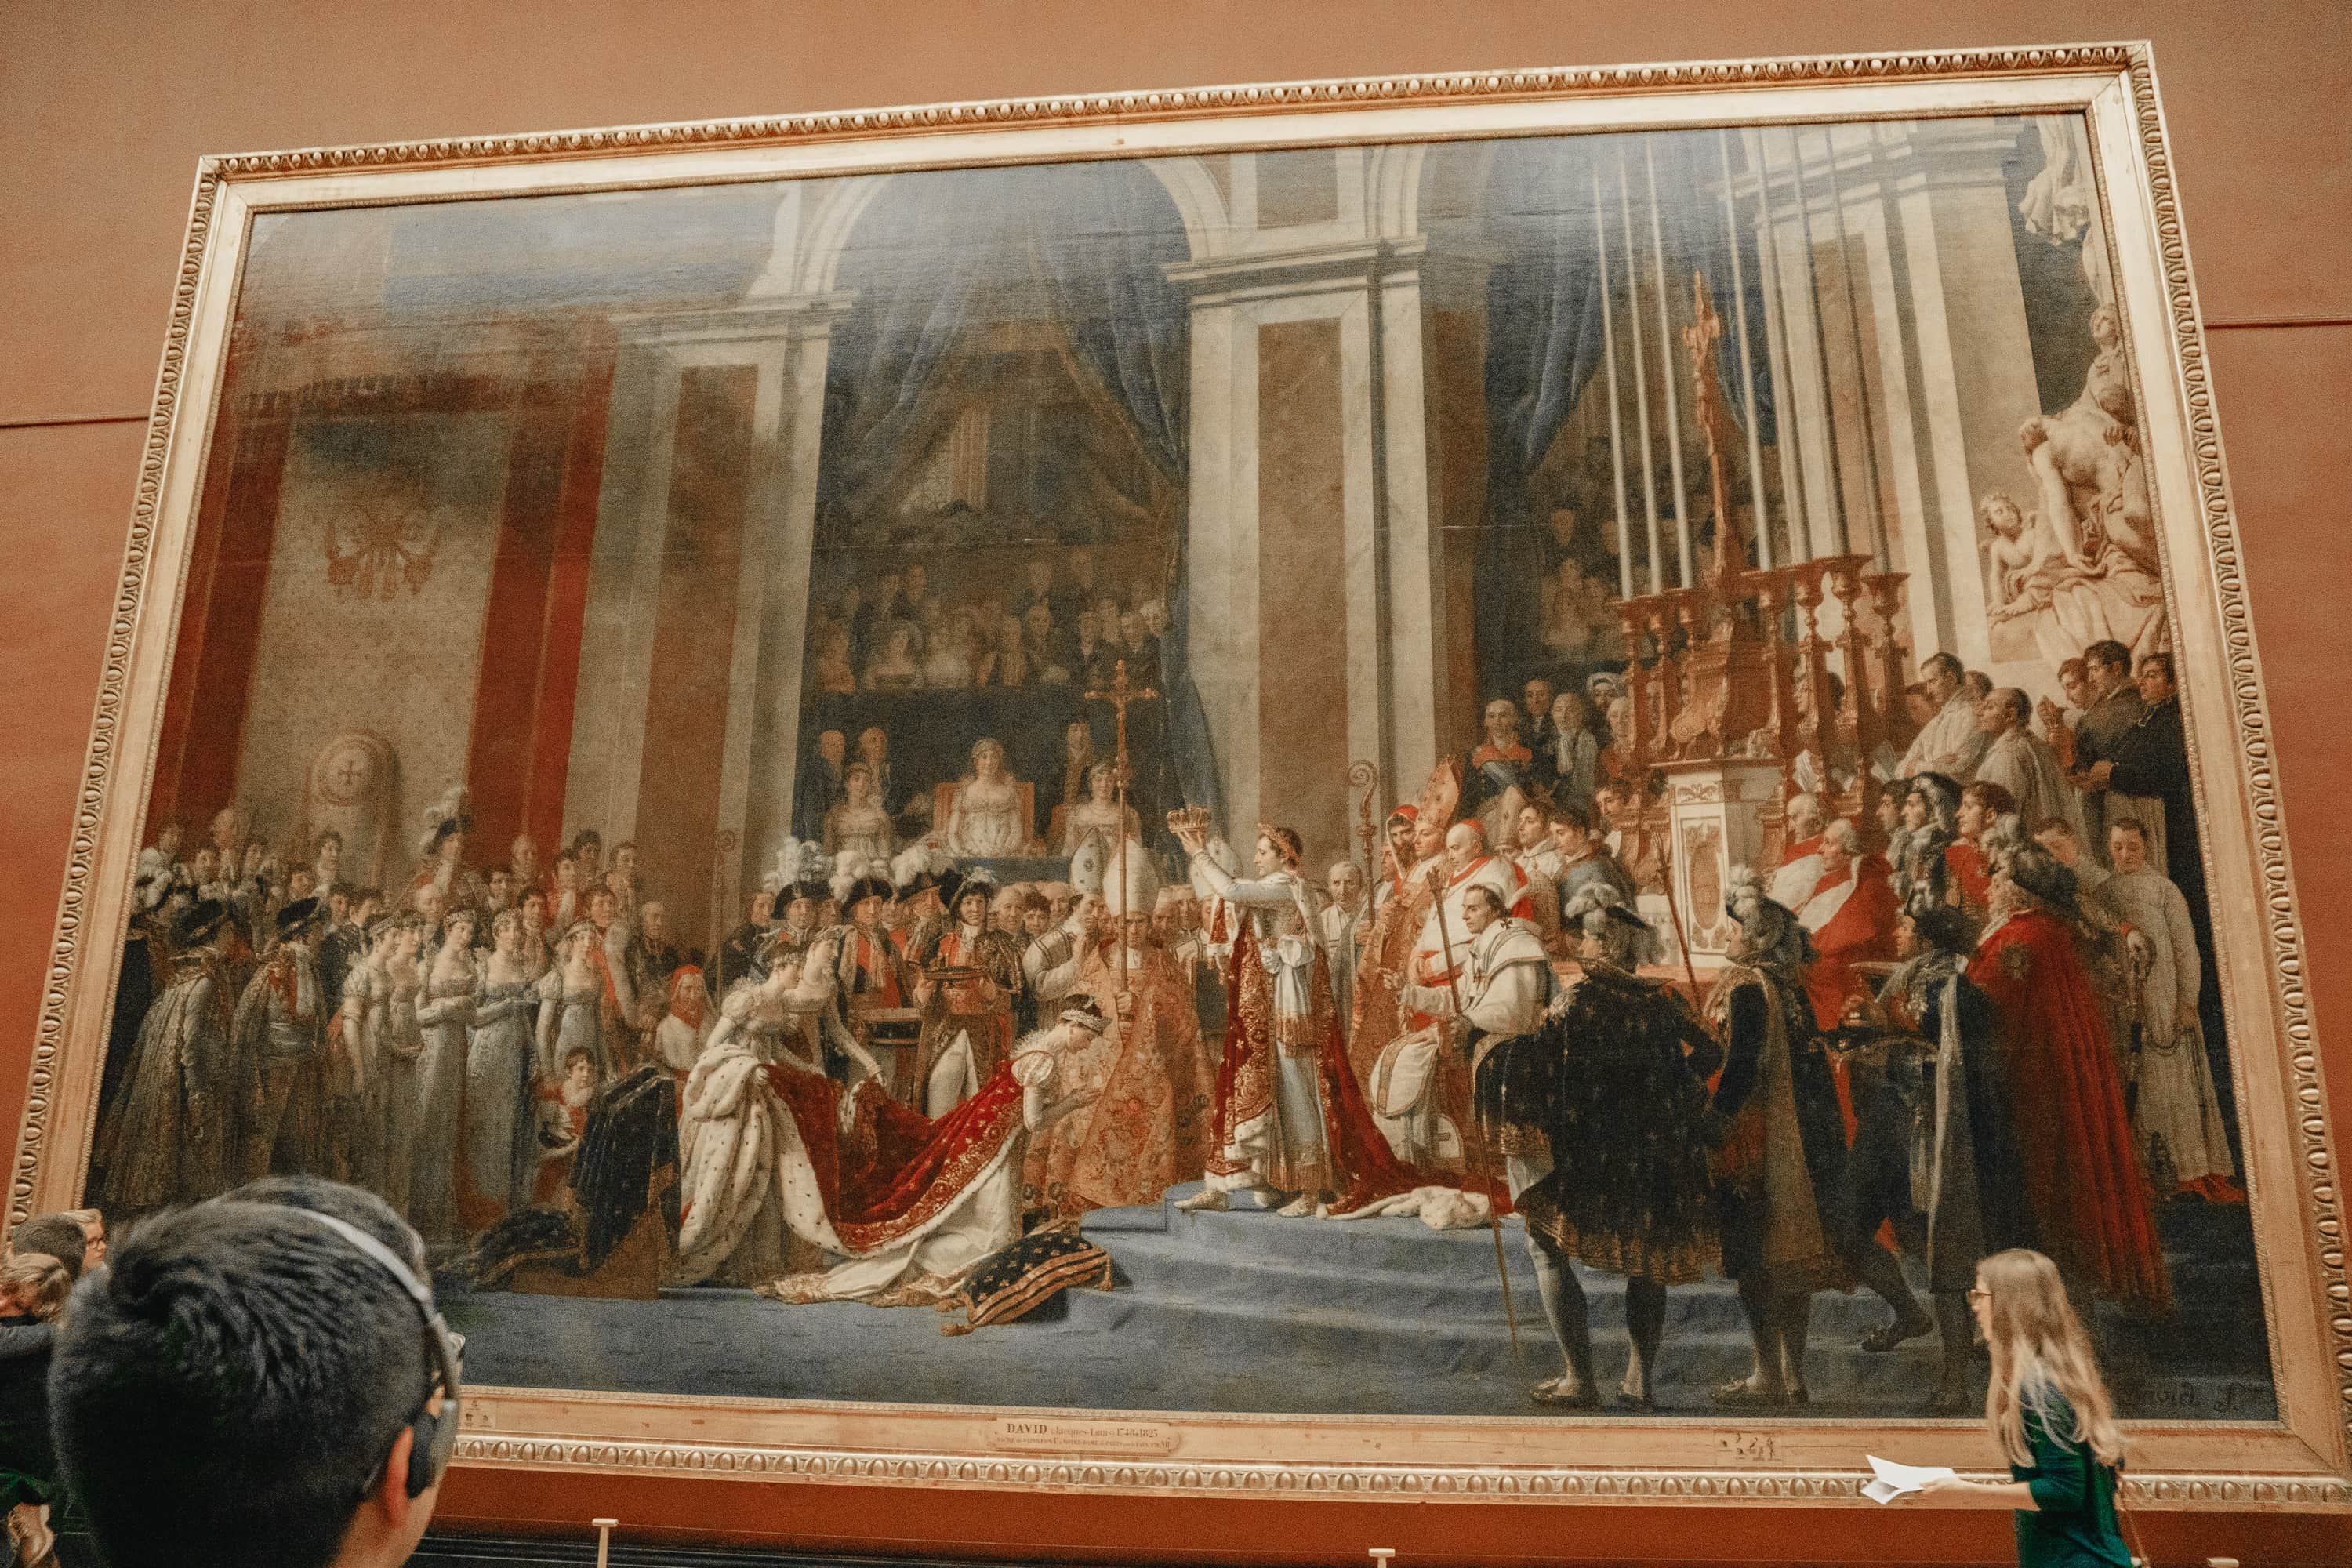 Huge painting at the Louvre